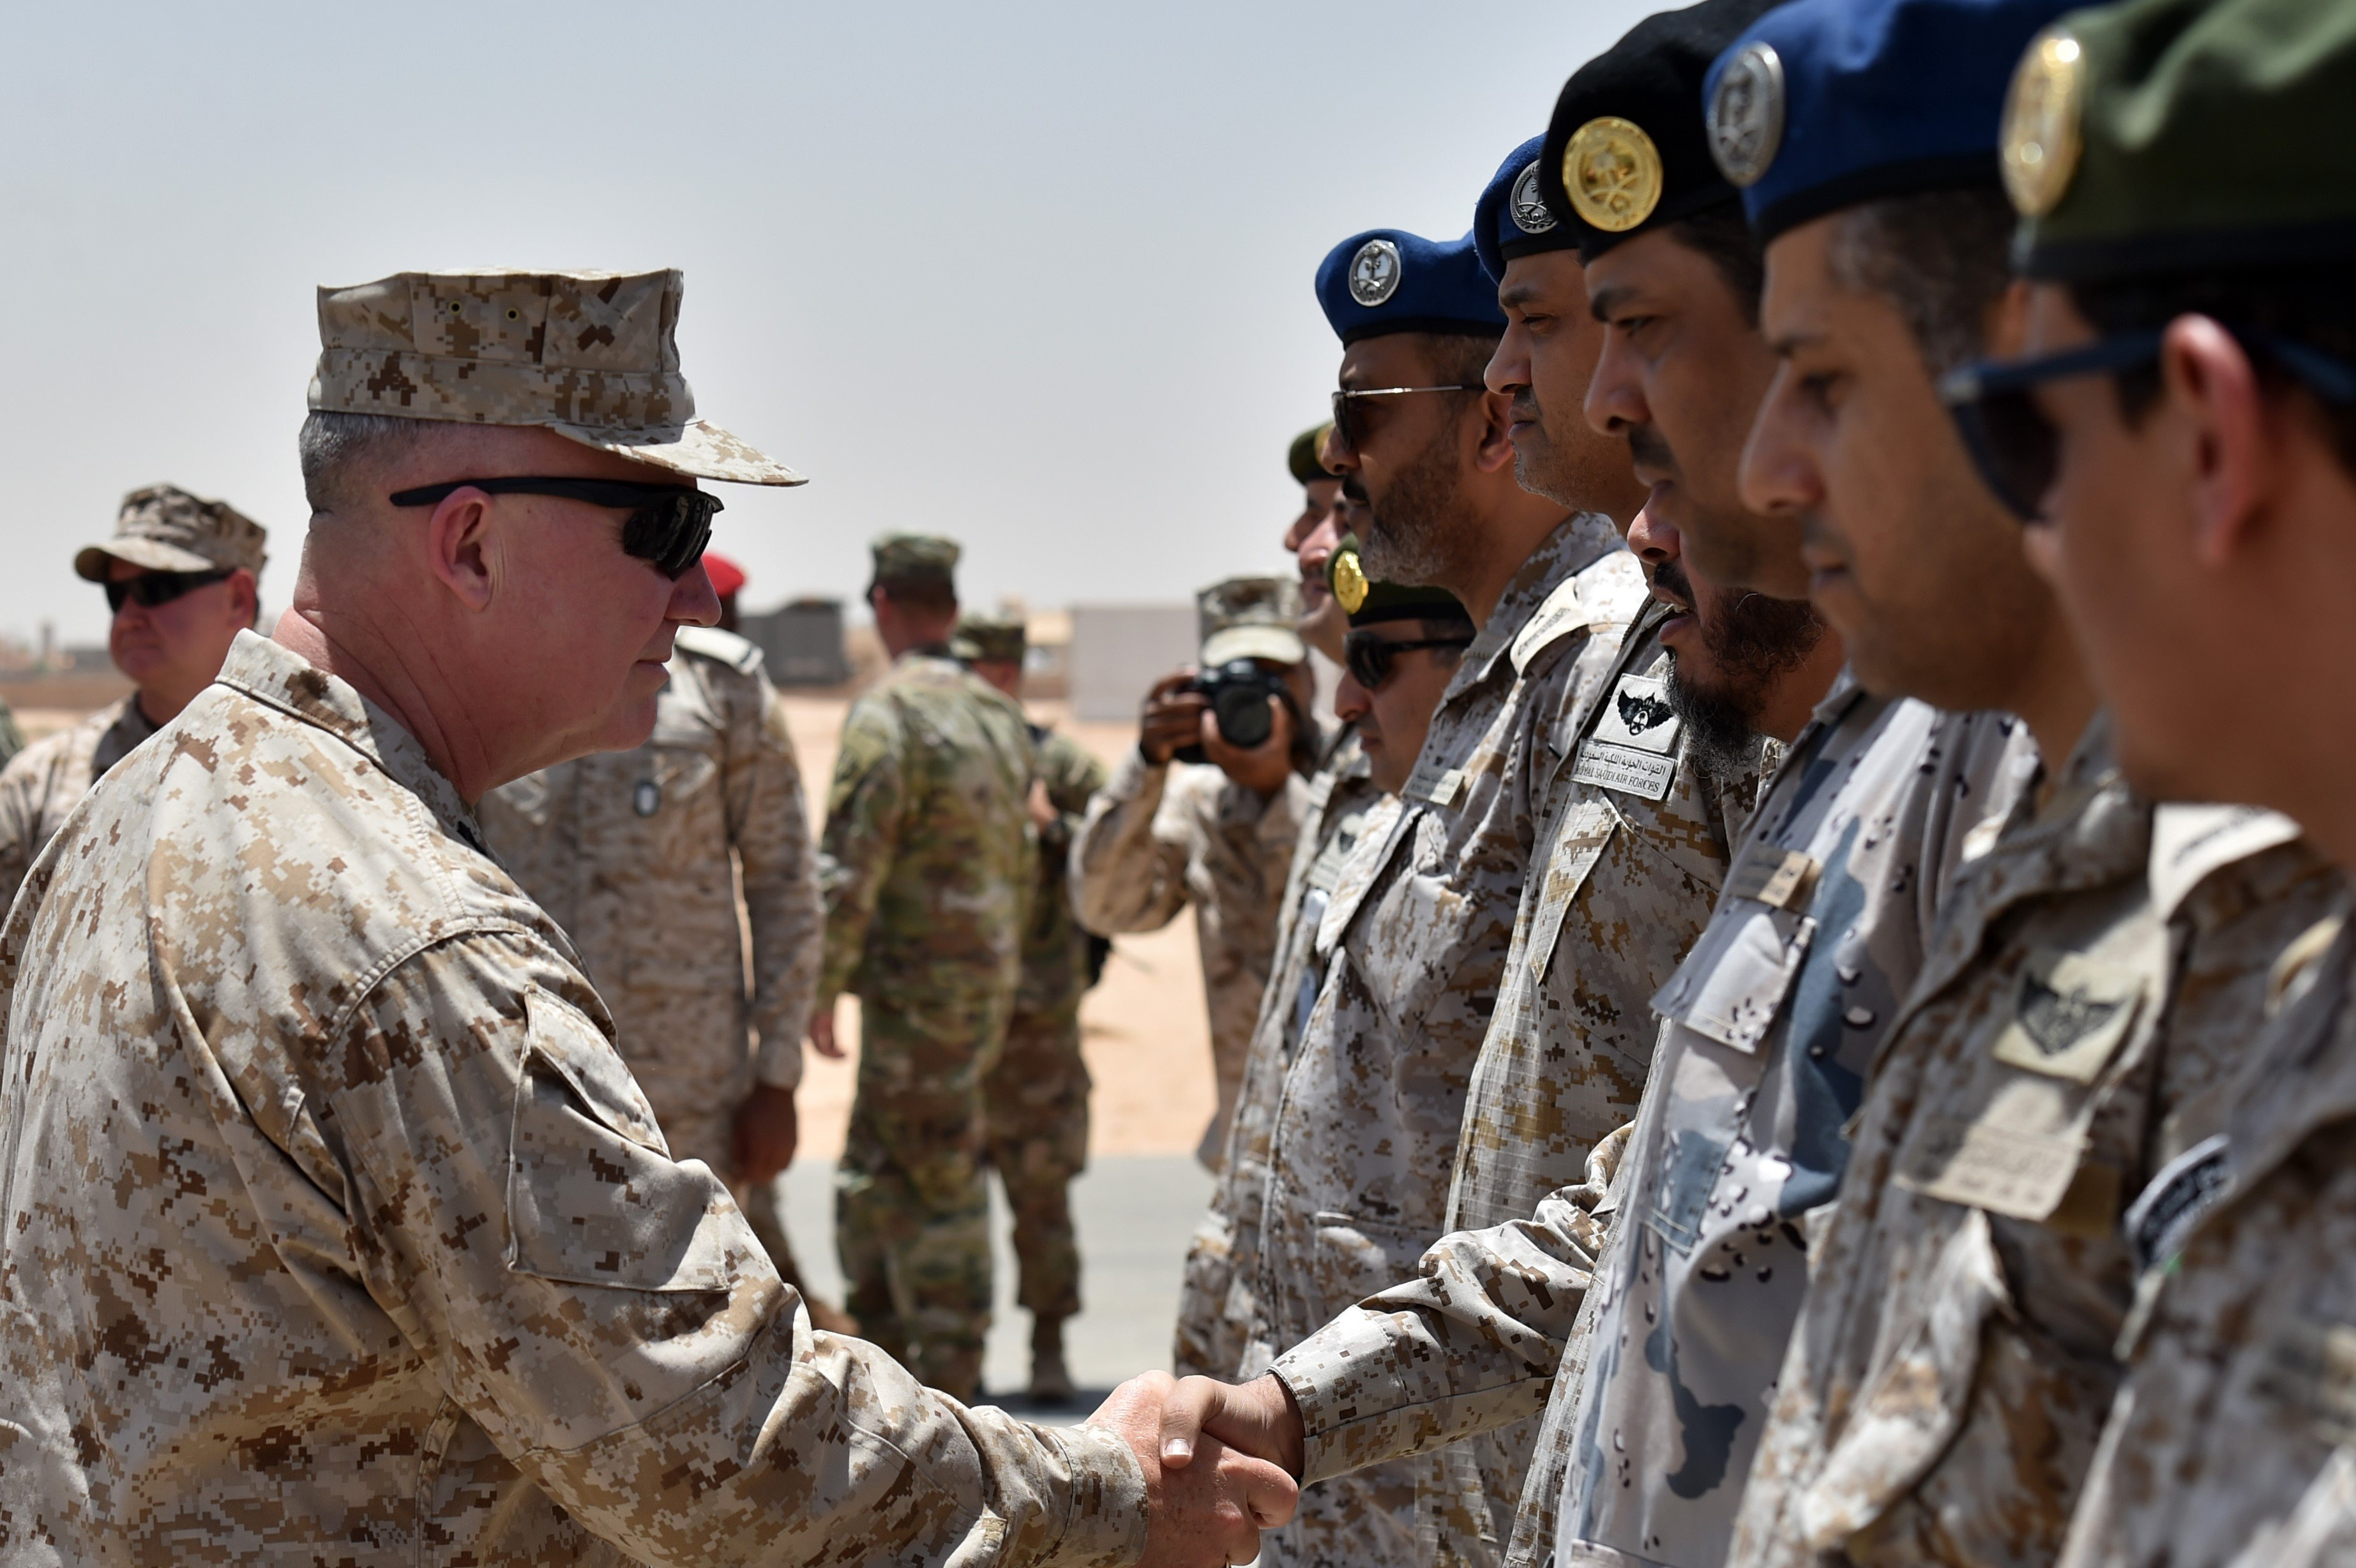 US Marine Corps General Kenneth F. McKenzie Jr. (L), Commander of the US Central Command (CENTCOM), shakes hands with Saudi military officers during his visit to a military base in al-Kharj in central Saudi Arabia on July 18, 2019.